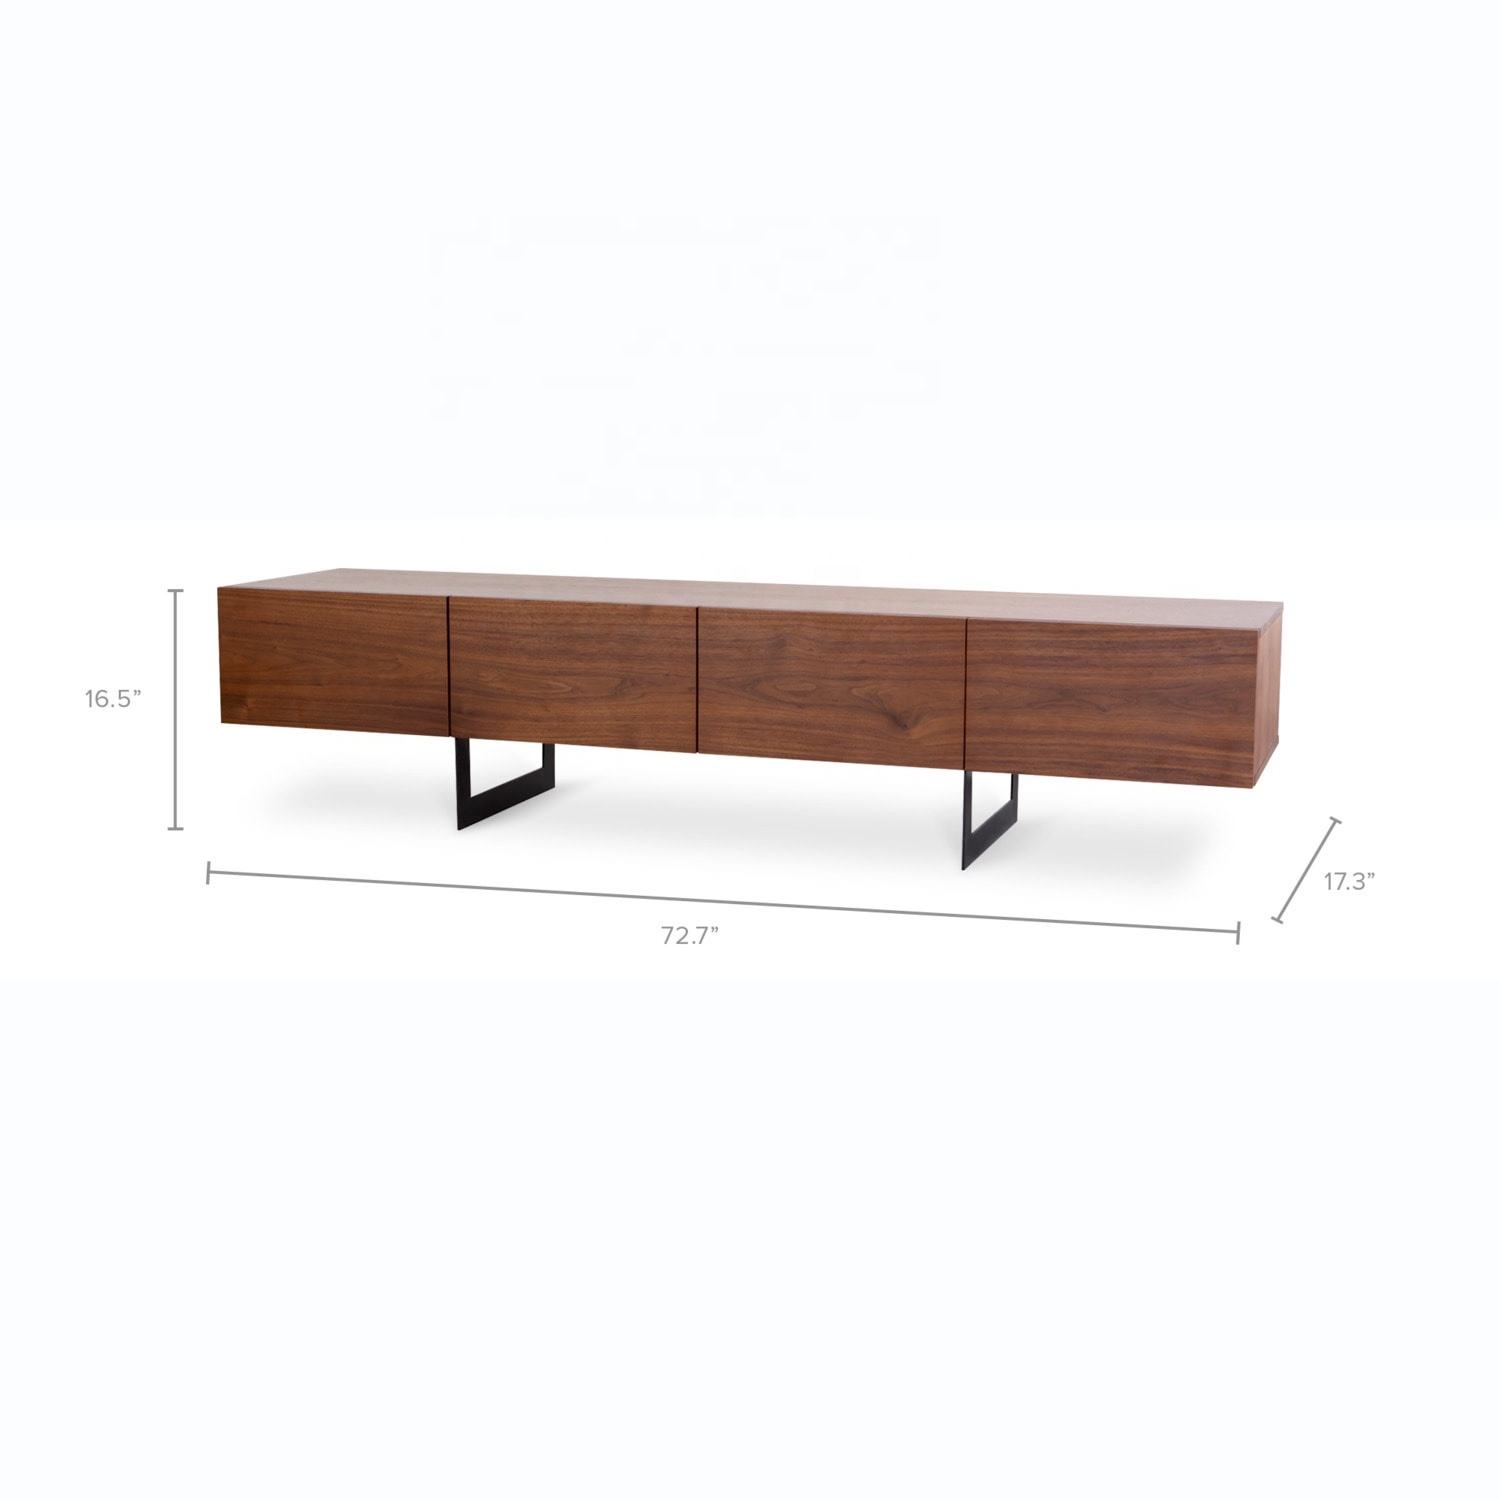 HOT sale Own Factory Made MDF modern style TV Stand Furniture leg stand for living room with metal legs